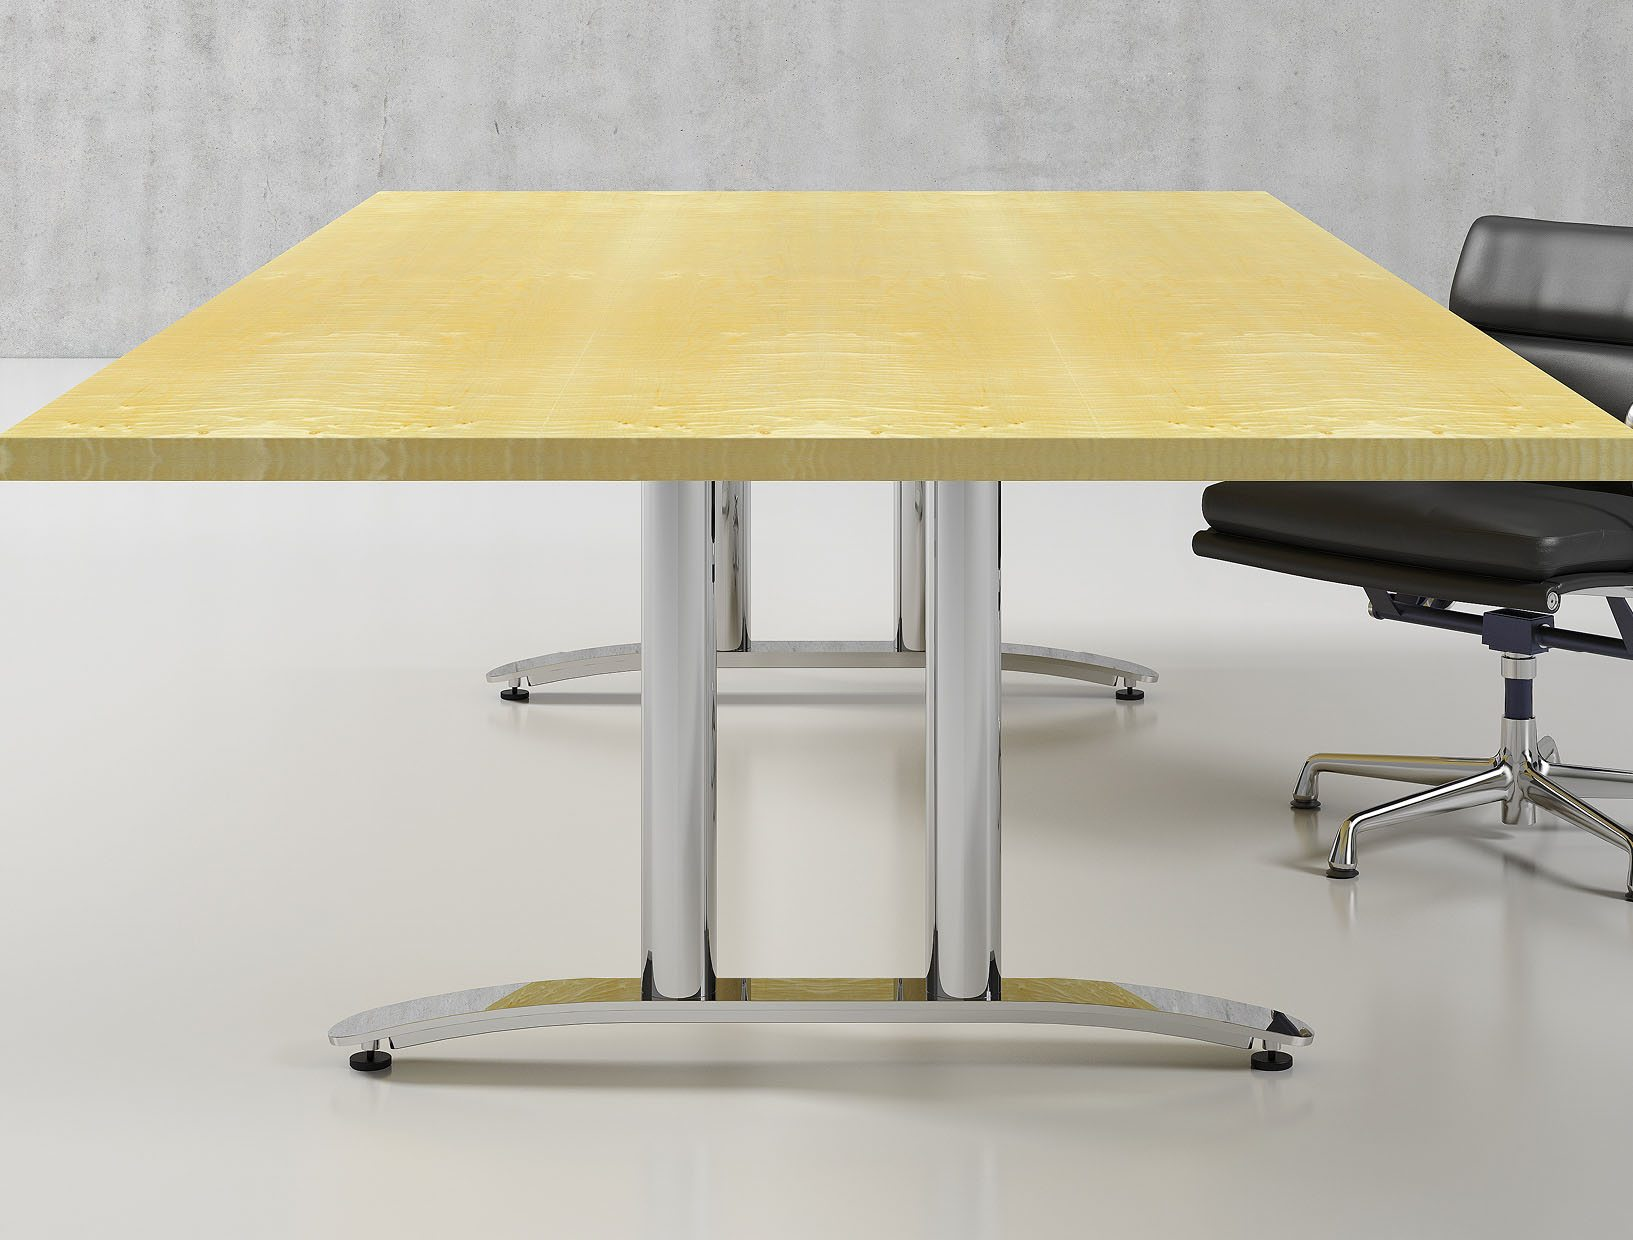 Glide table 10